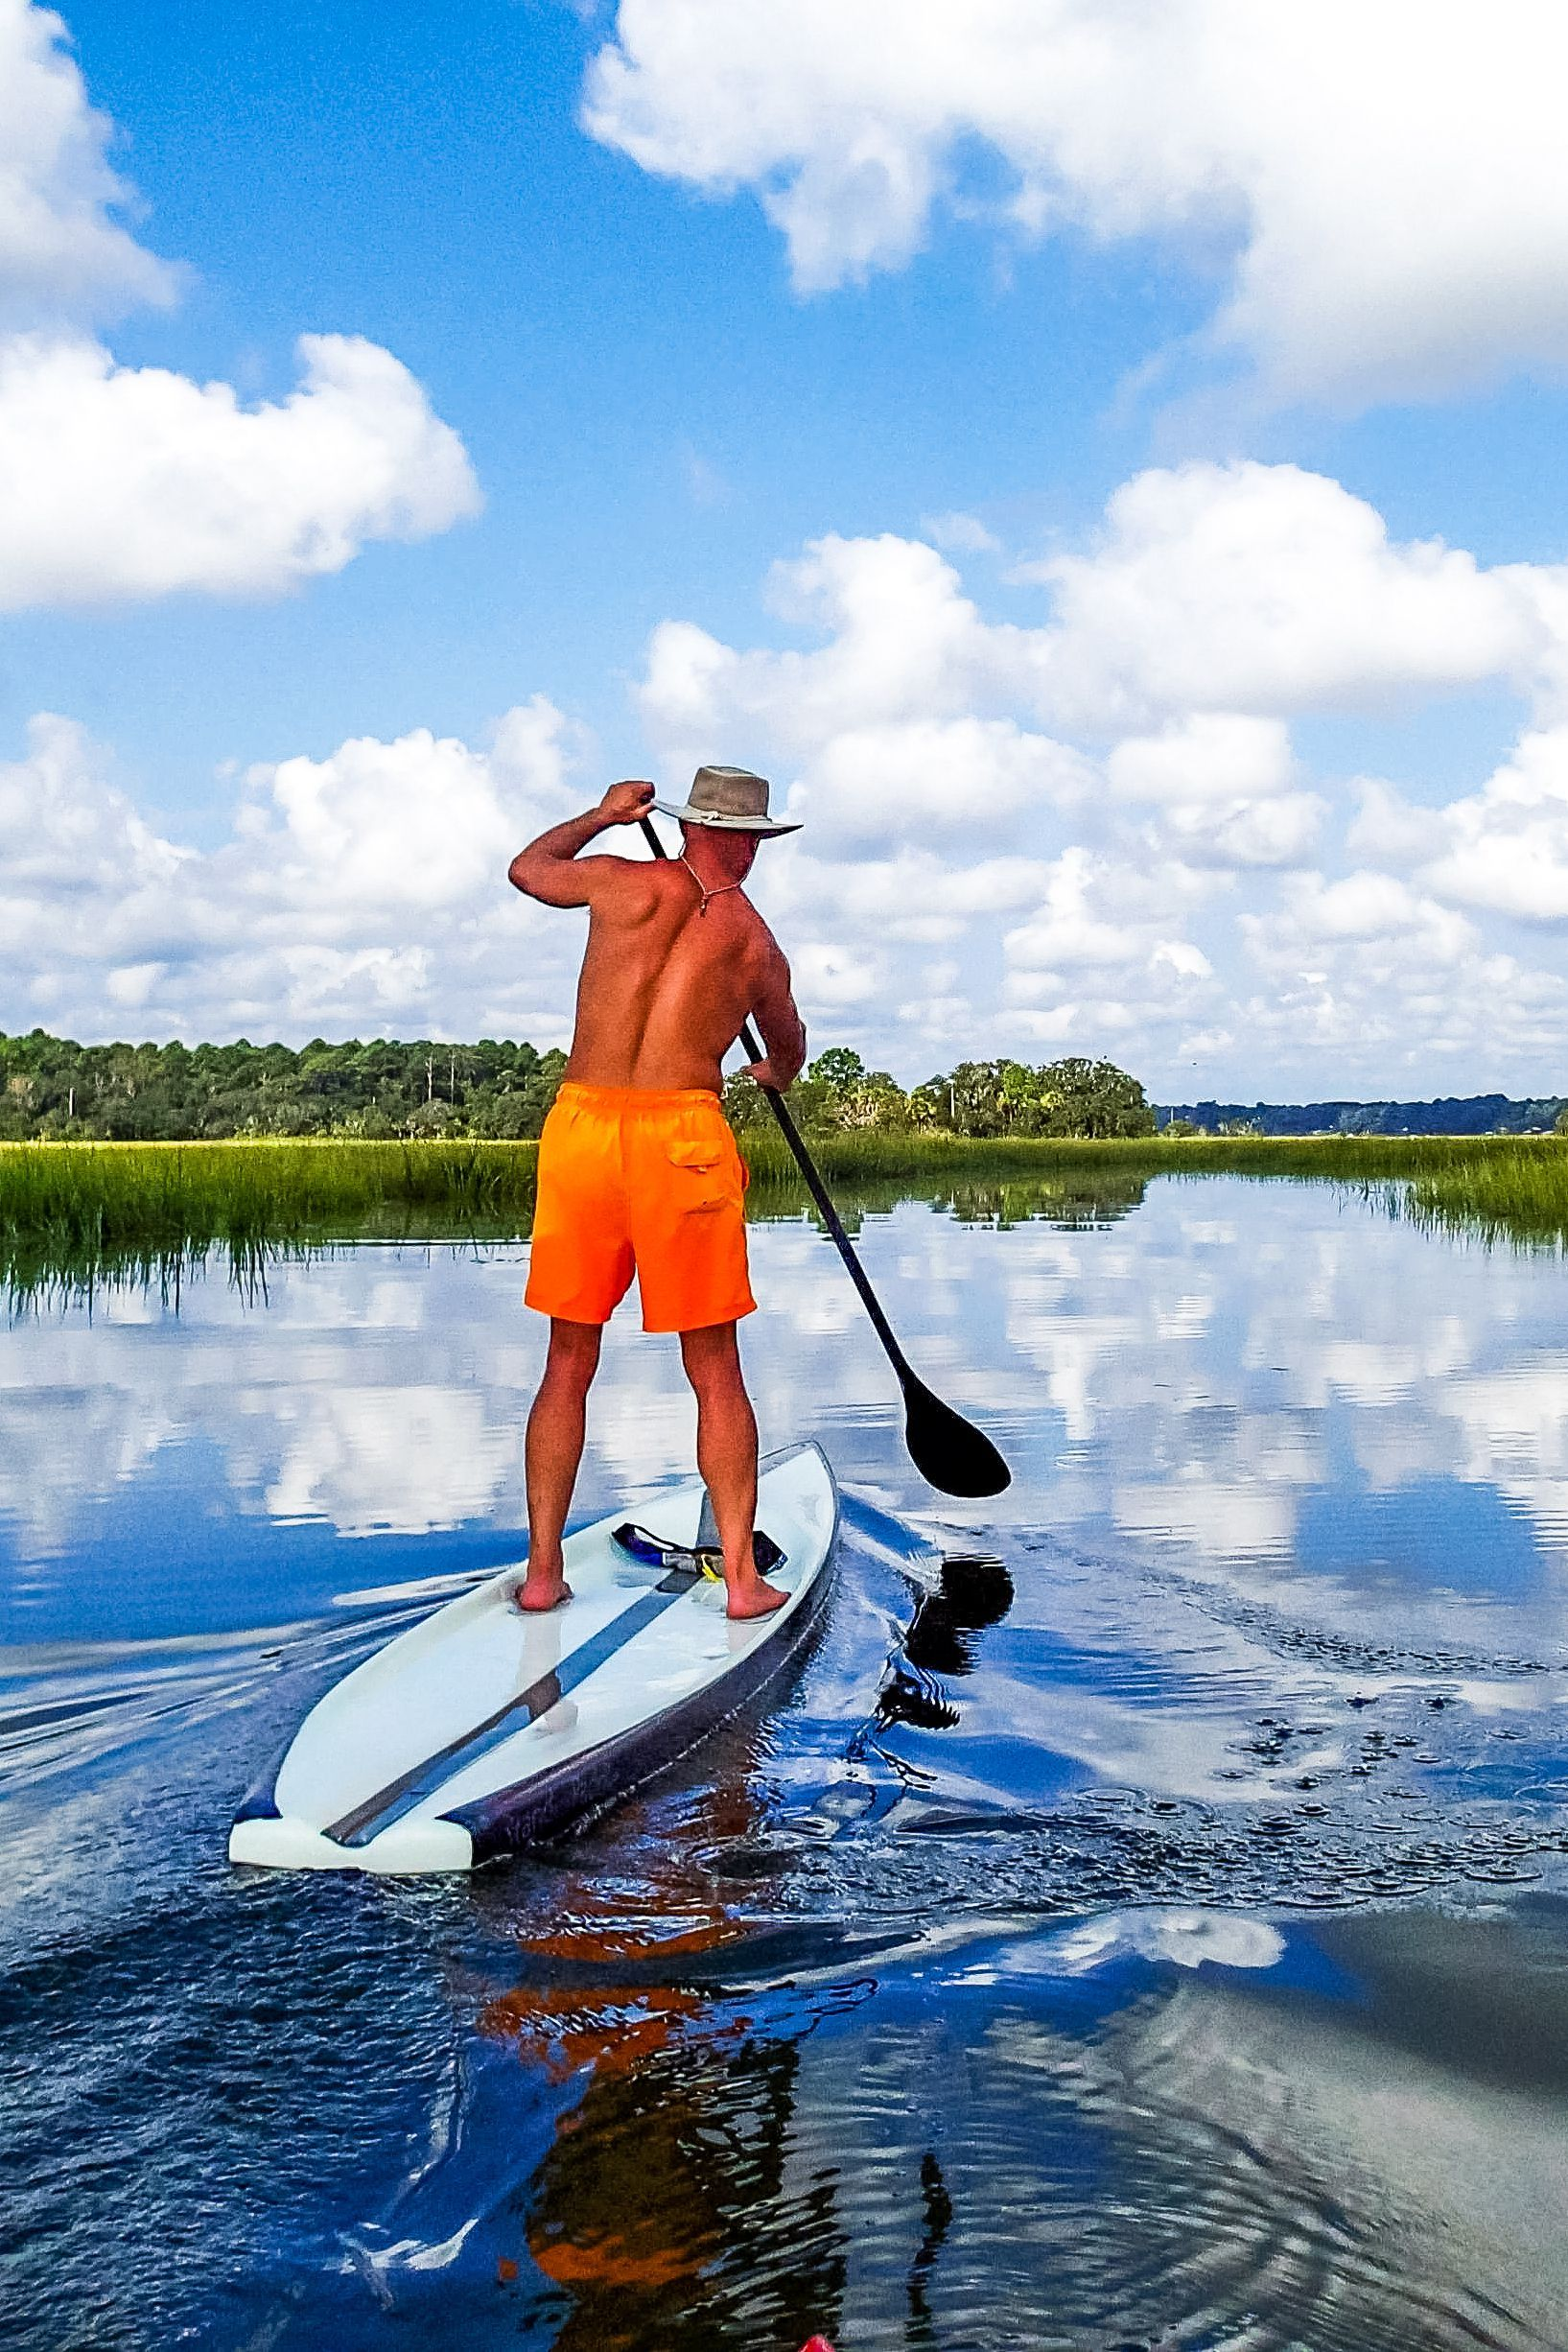 bluffton paddle boarding things to do bluffton vacations rh pinterest com things to do in hilton head sc on a rainy day things to do in hilton head with a toddler